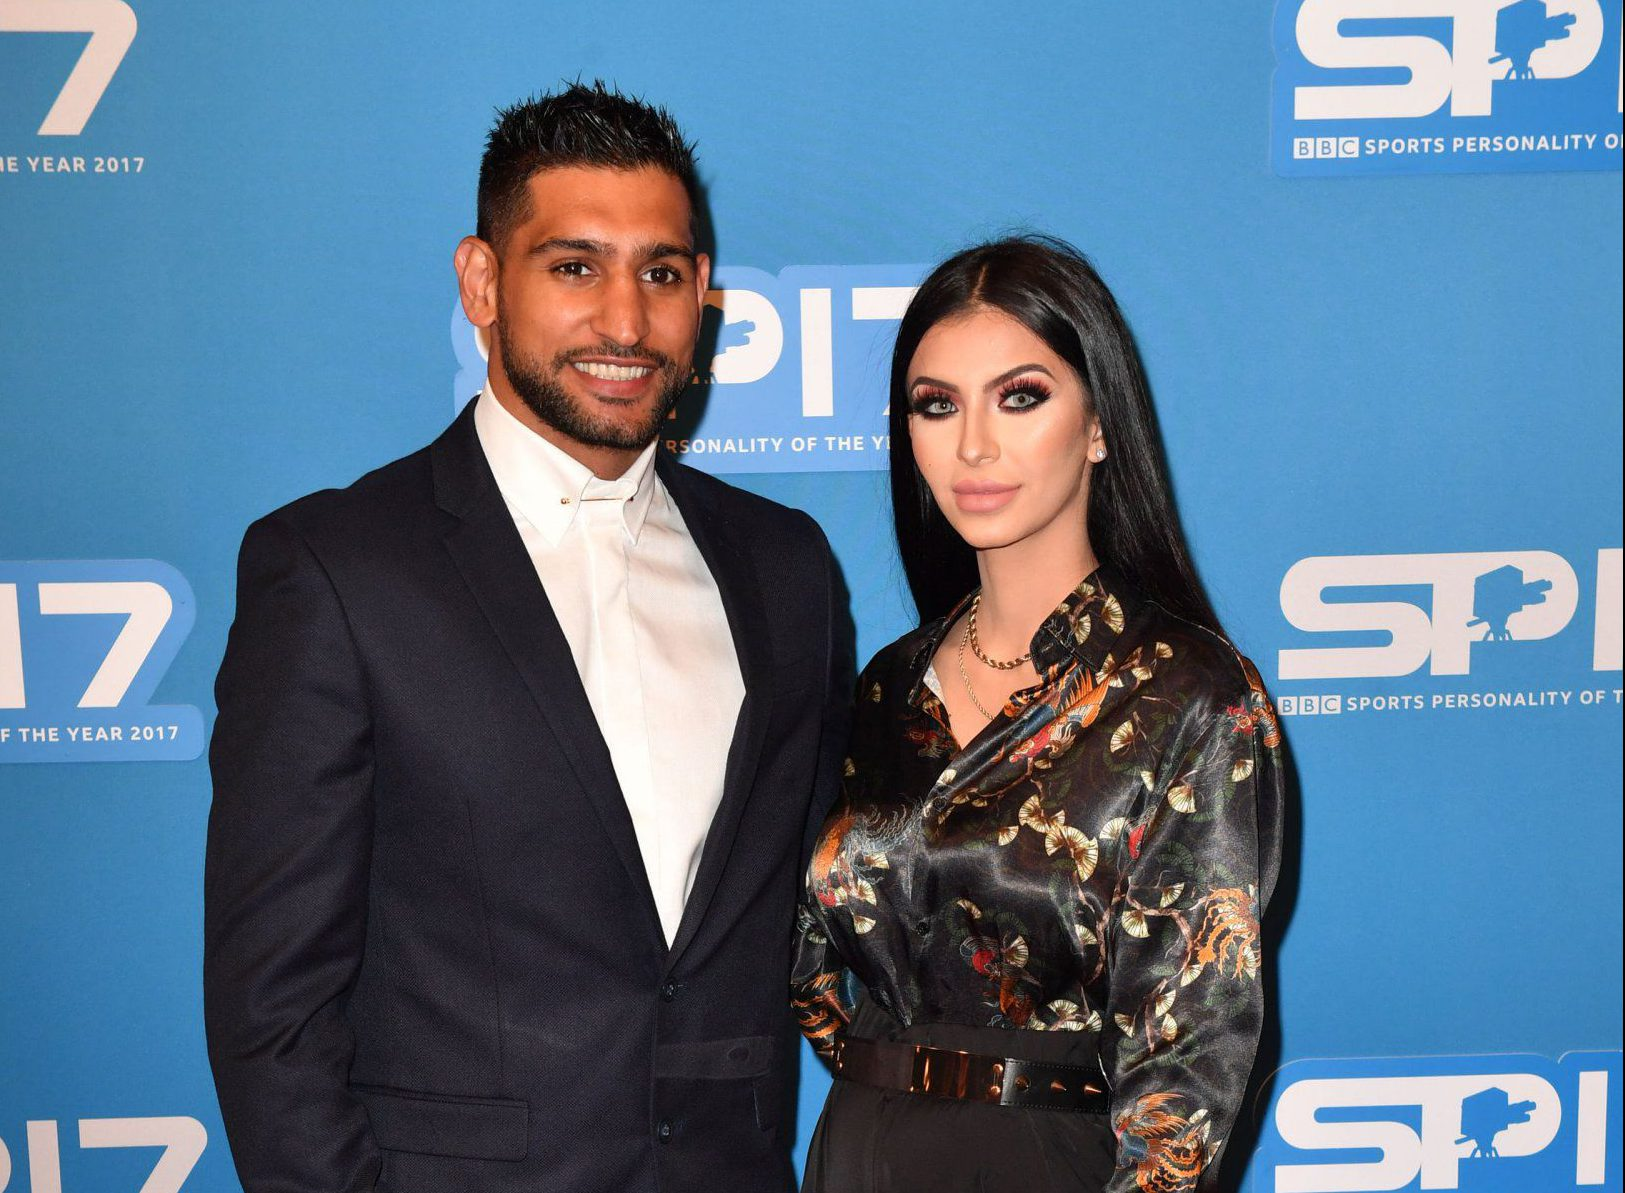 Amir Khan claims women 'set him up' by tracking him down at hotels and asking for pictures